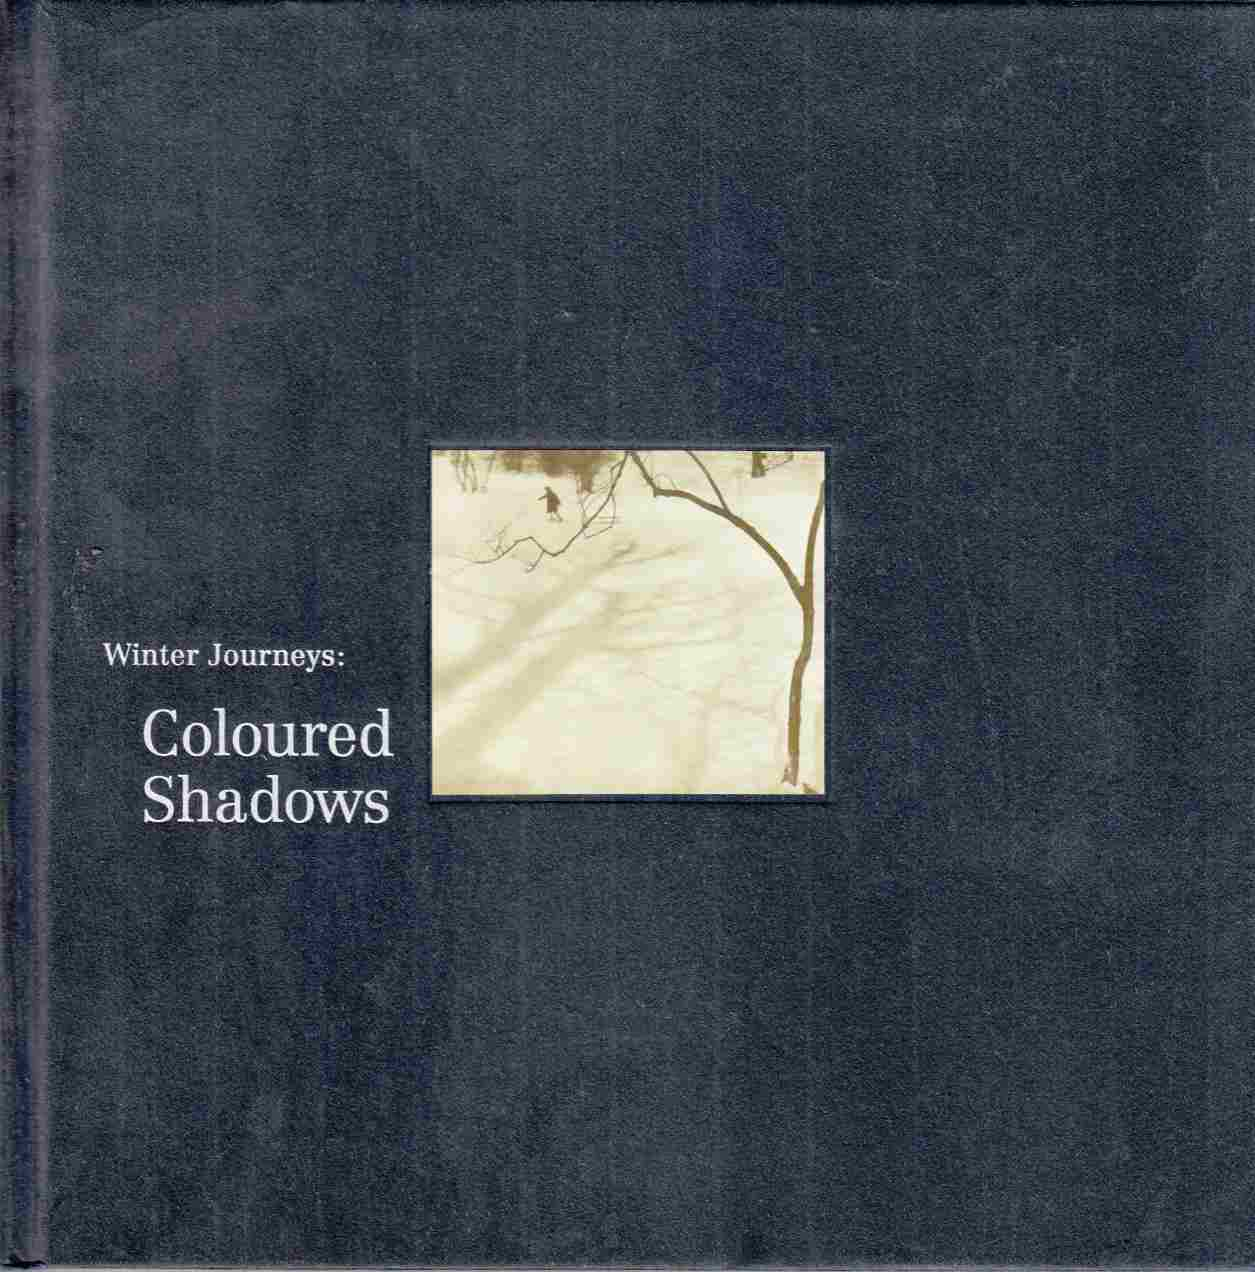 Image for Winter Journeys: Coloured Shadows Photographs and Texts about Winter